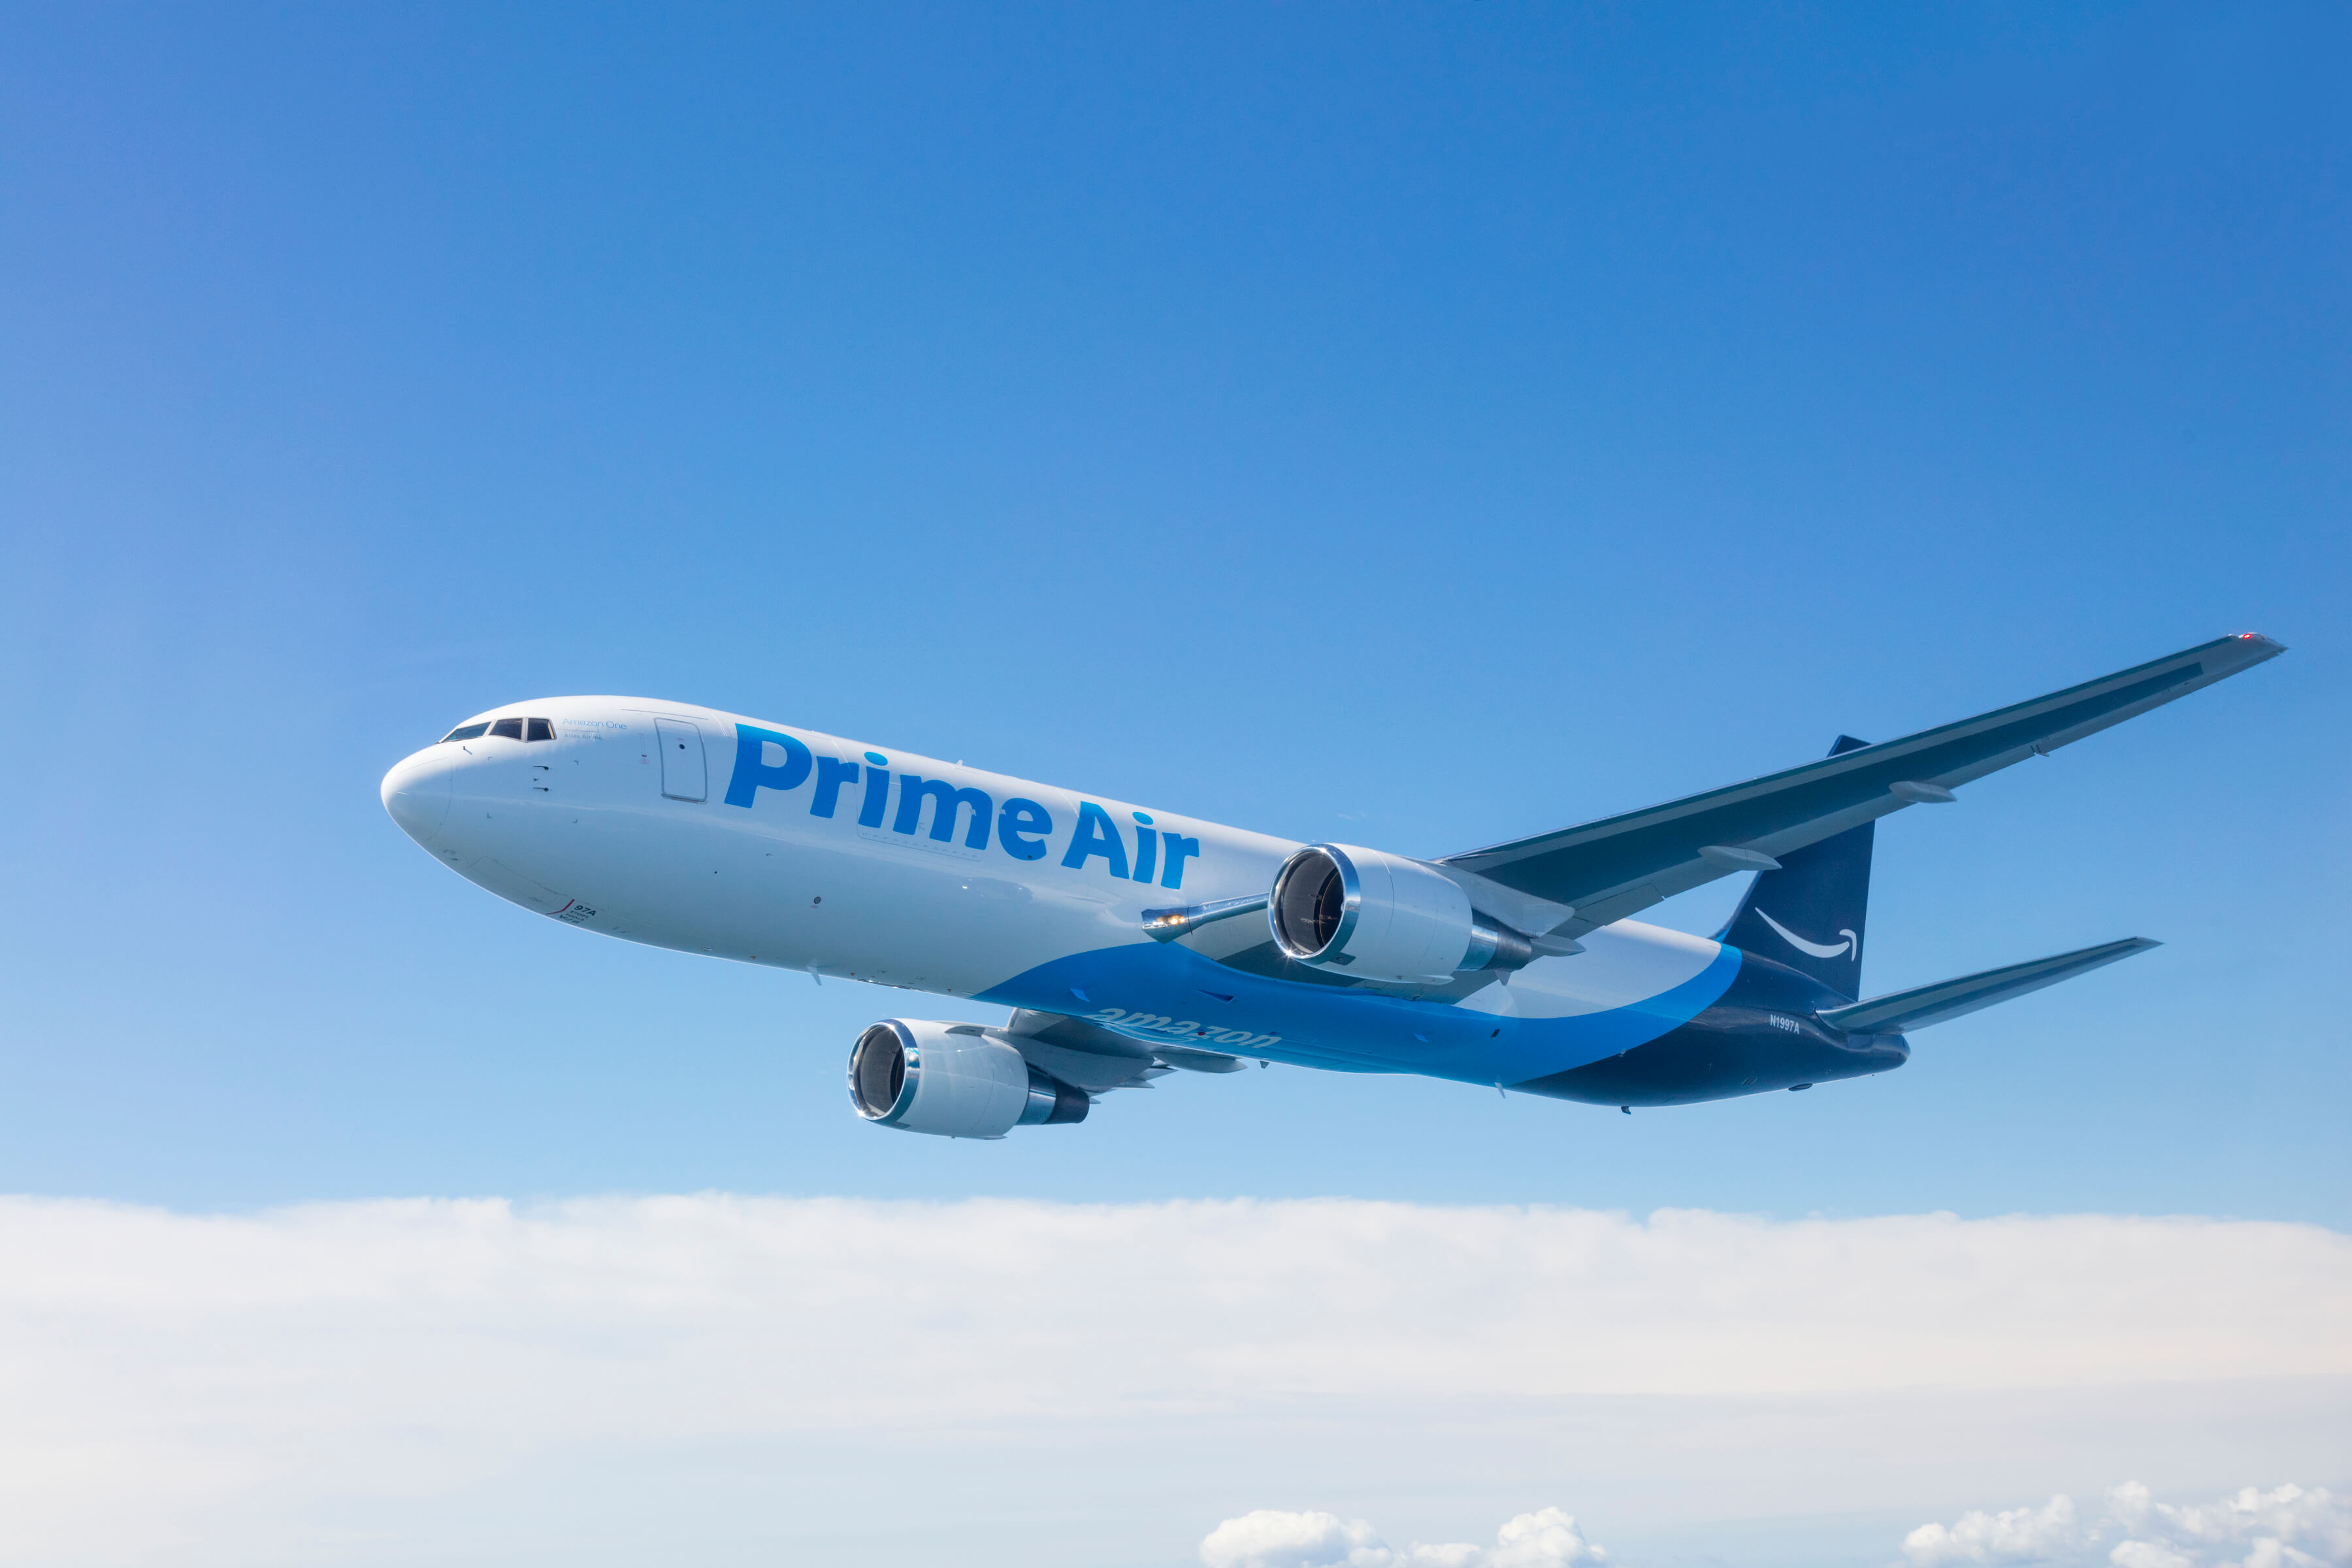 Amazon said is has more than 150 million Prime subscribers, up from 100 million in April 2018 Amazon